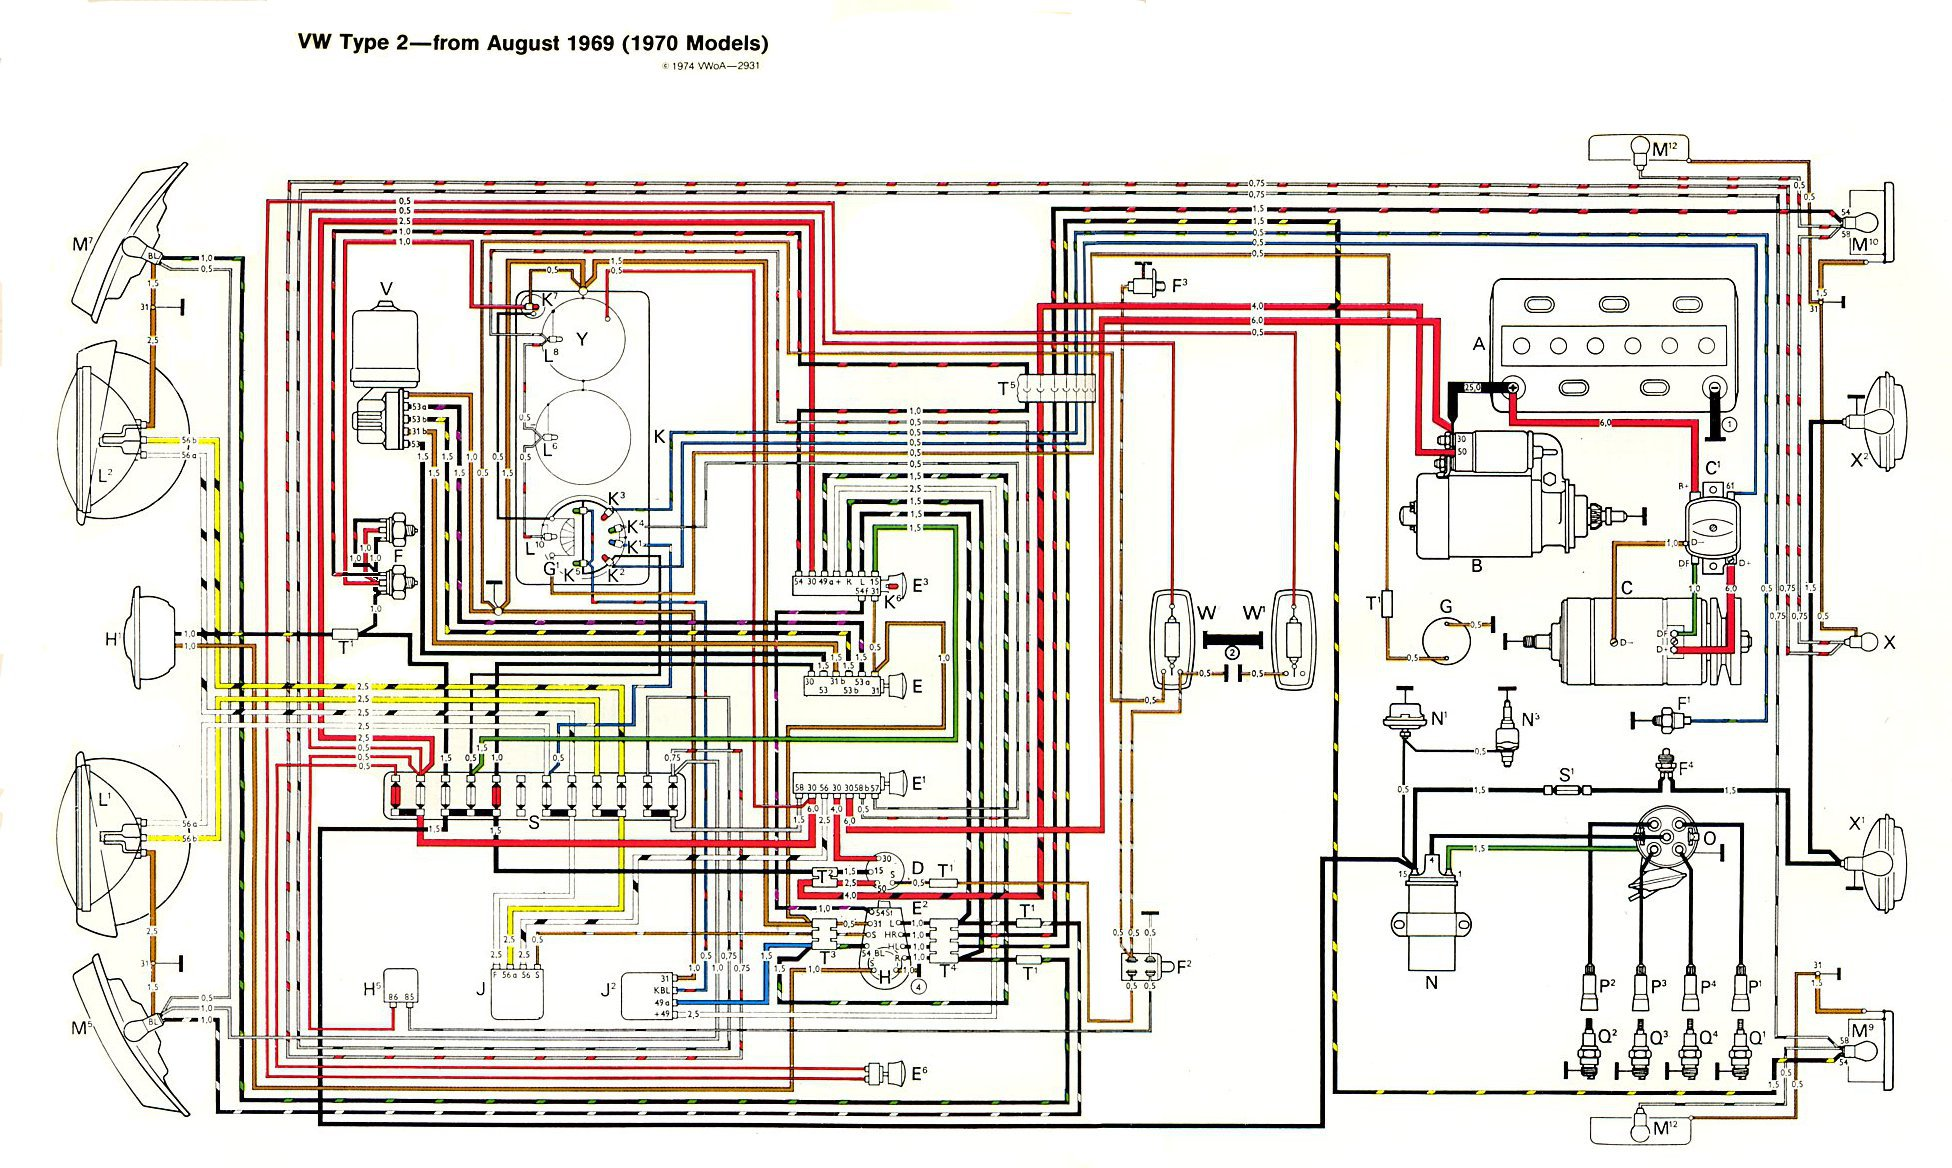 baybus_70 thesamba com type 2 wiring diagrams vw mk1 wiring diagram at n-0.co